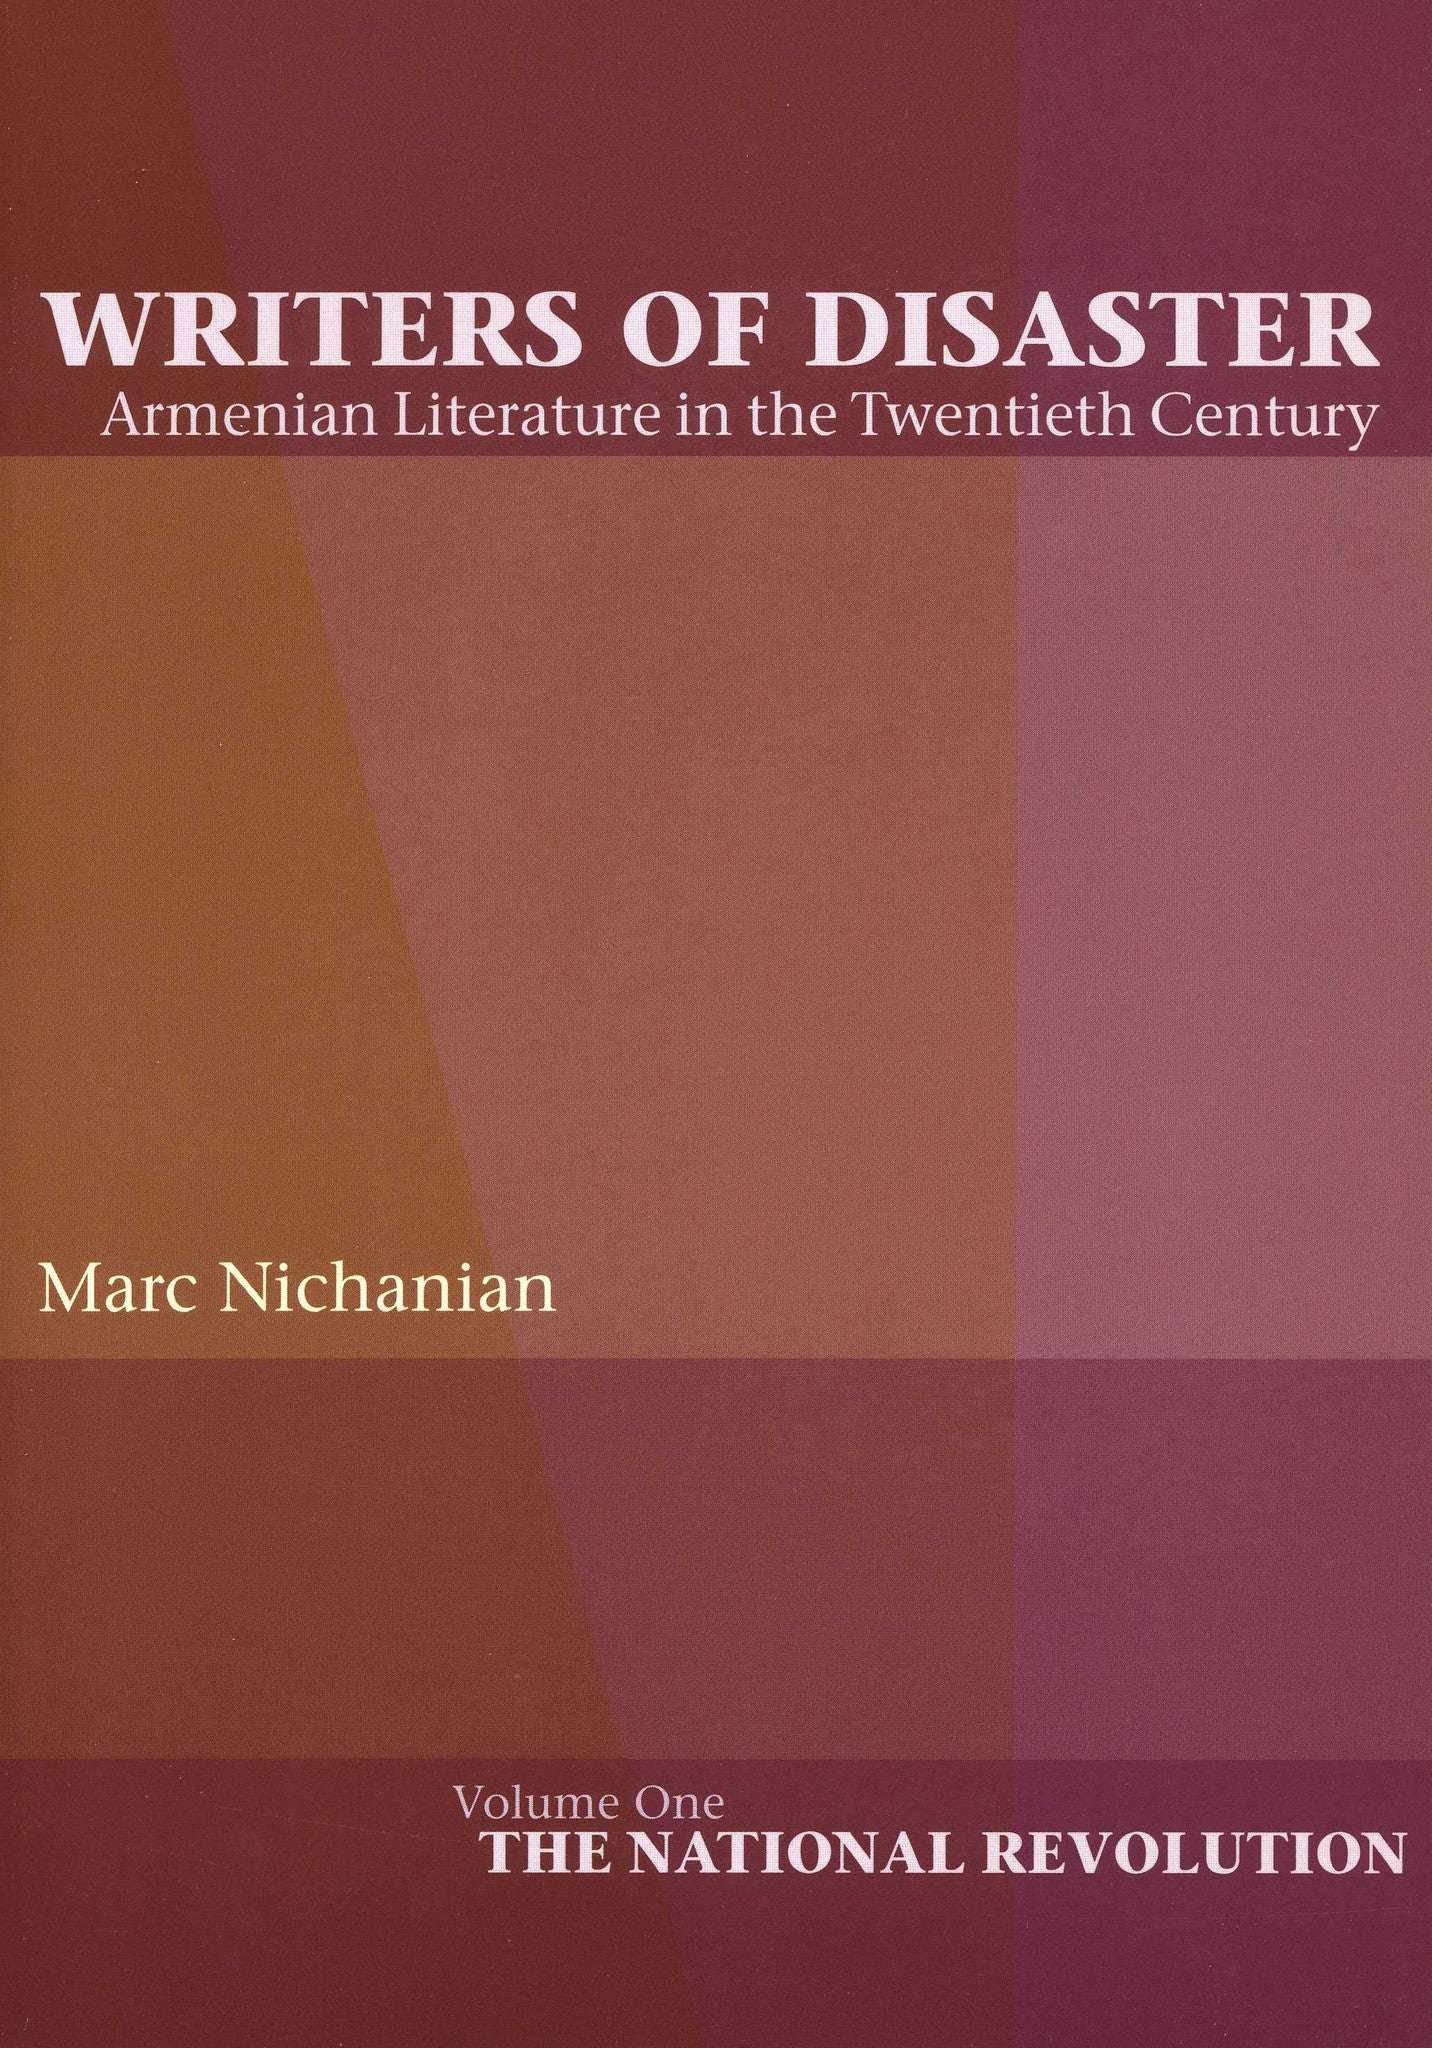 WRITERS OF DISASTER: Armenian Literature in the Twentieth Century